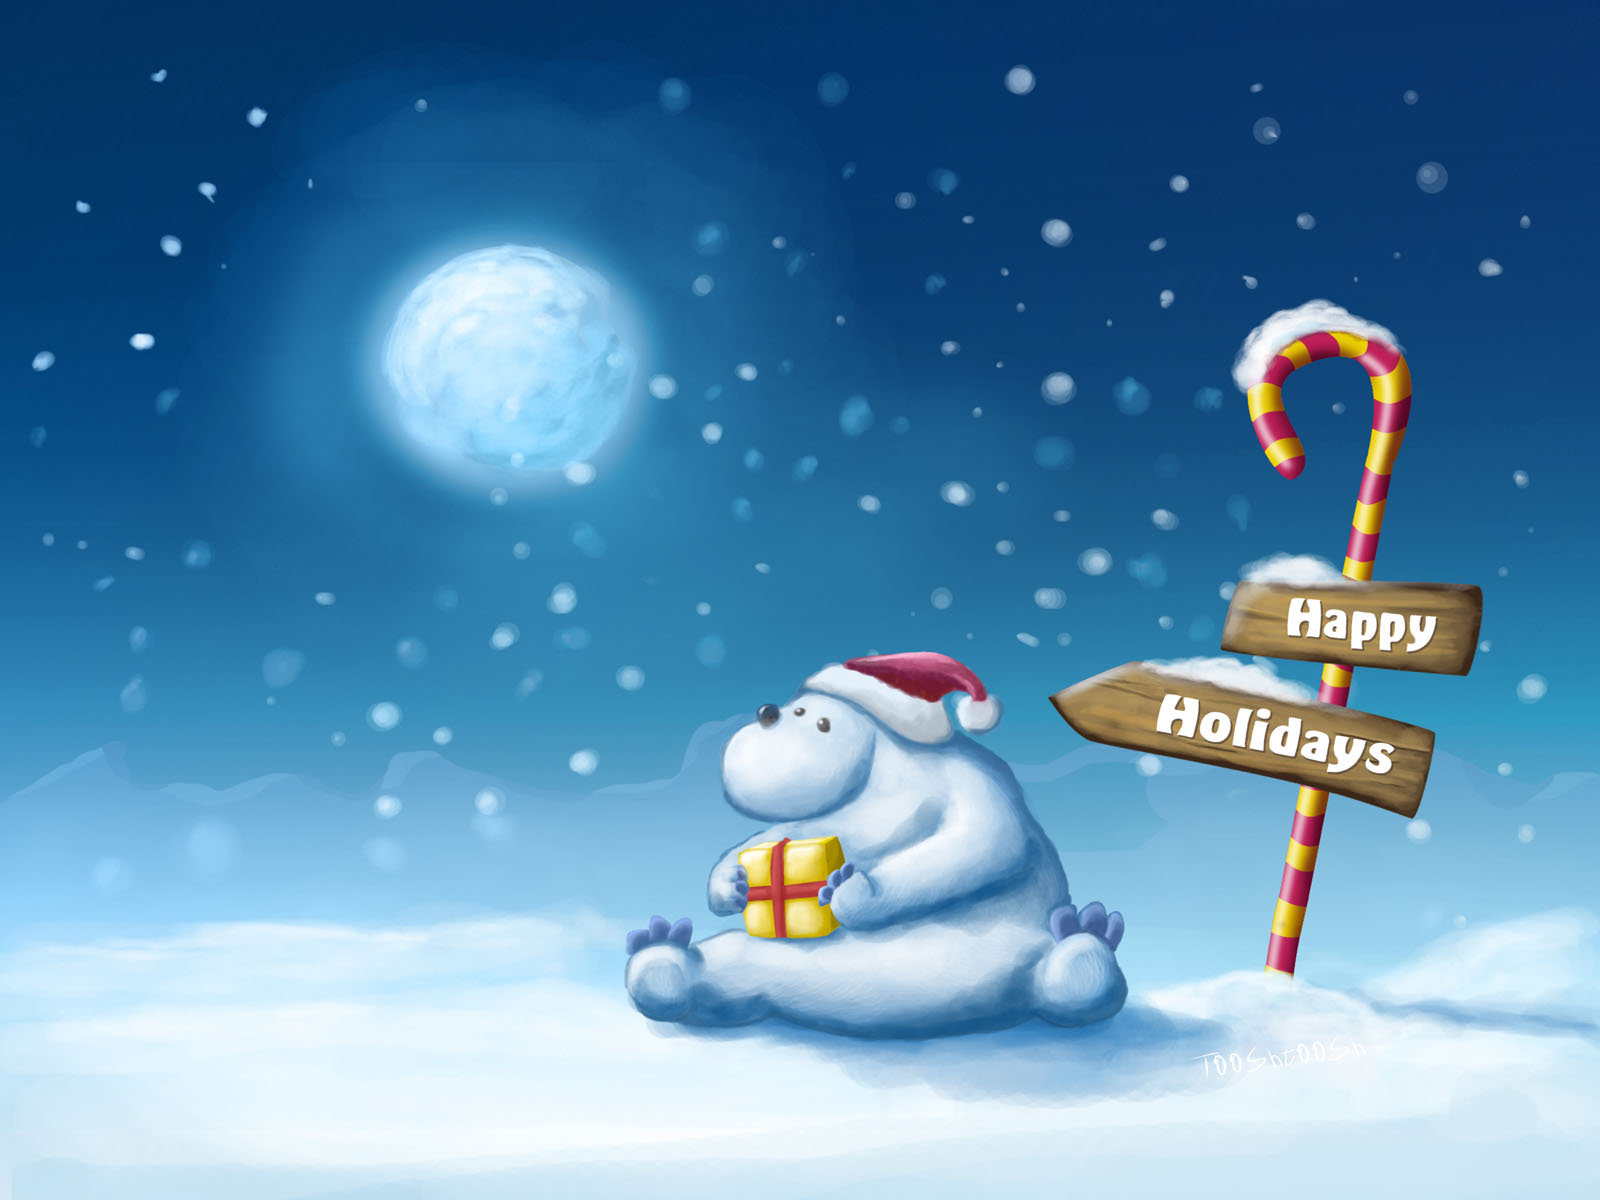 holiday powerpoint background christmas holiday powerpoint background - Holiday Cartoons Free